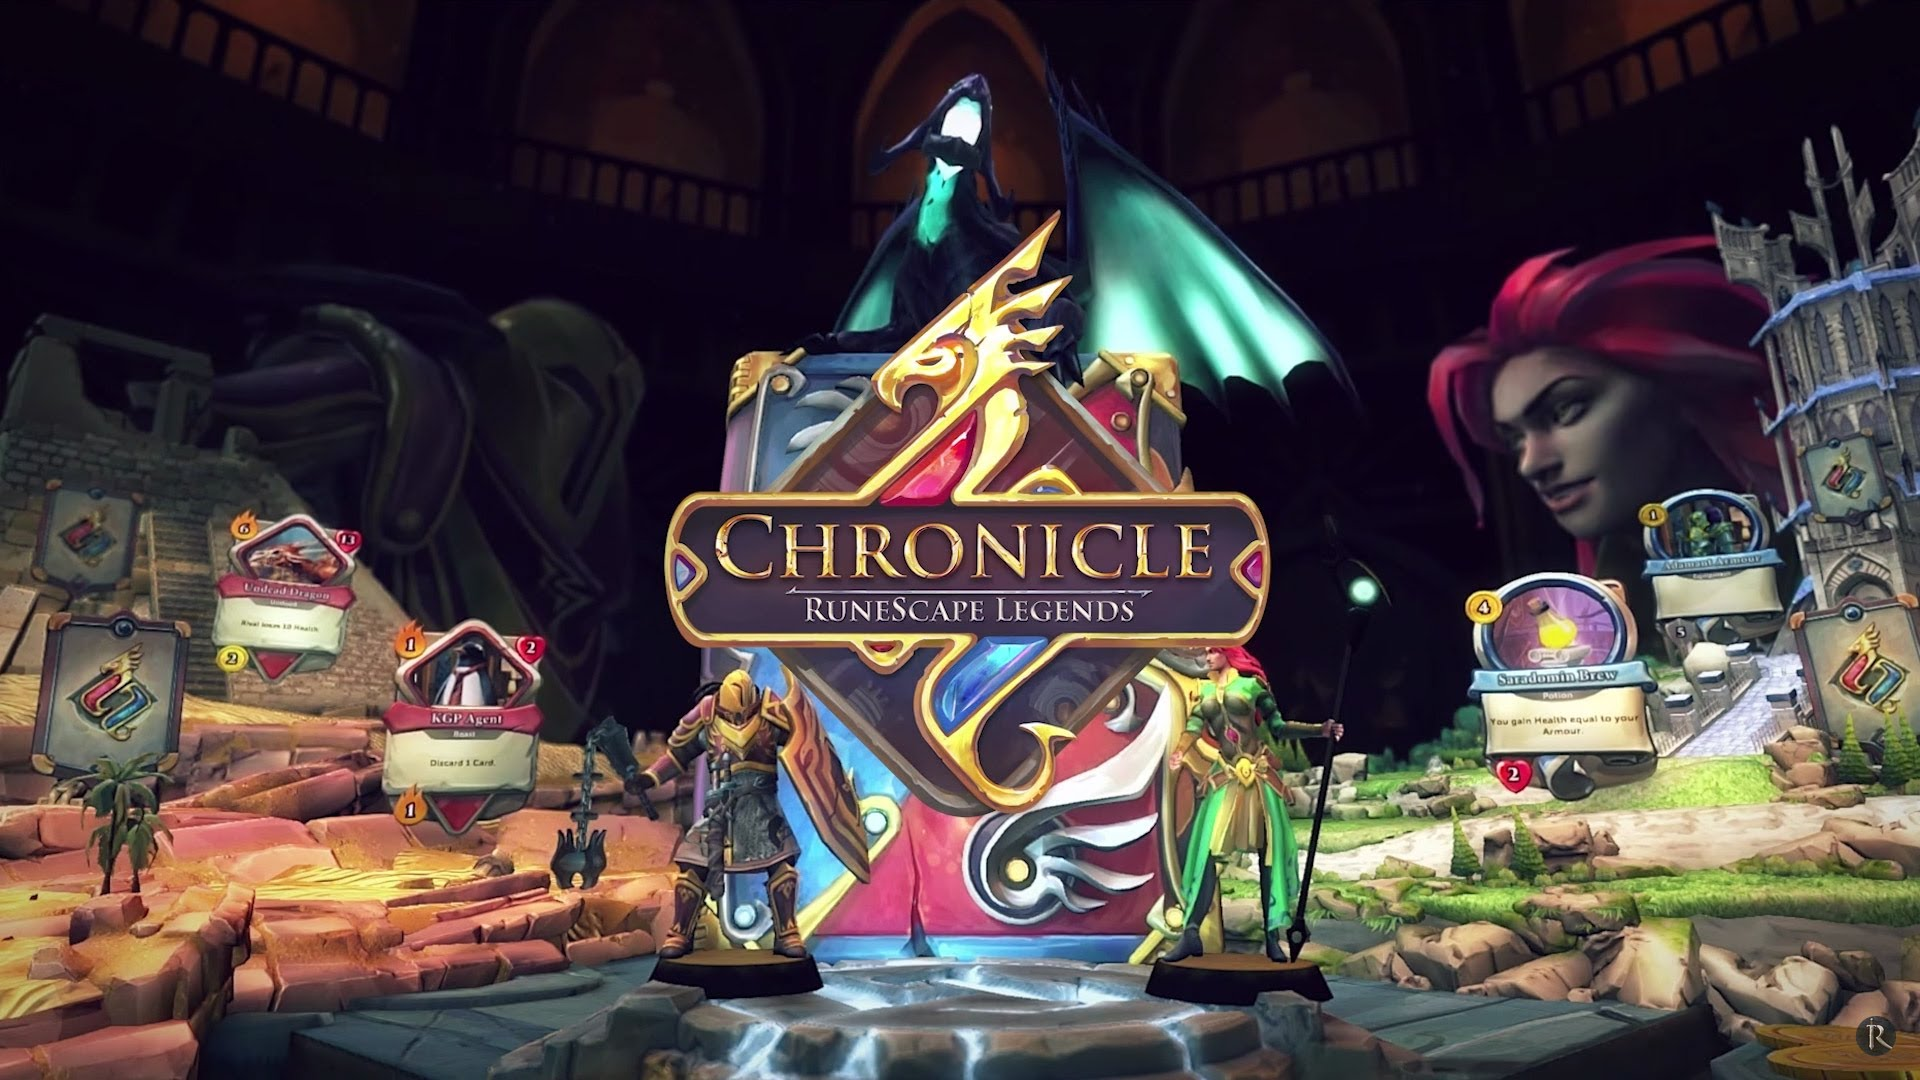 Chronicle: Runescape Legends (PC) - May 26